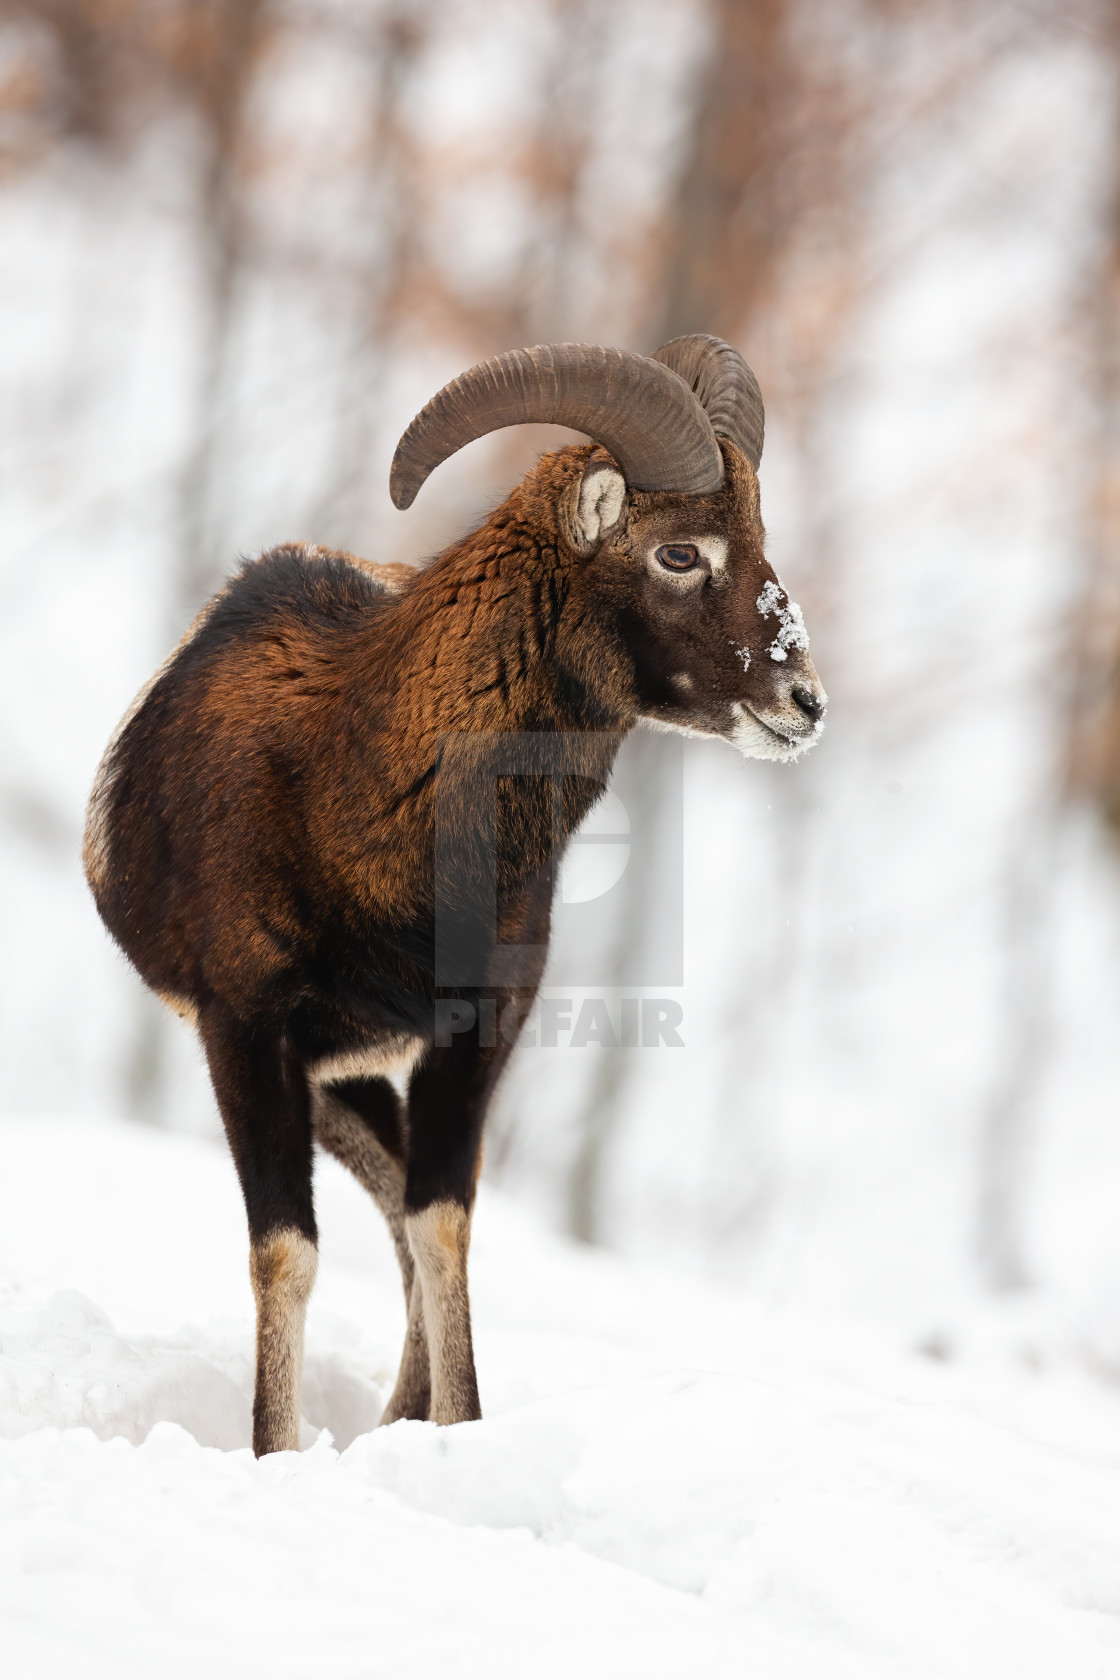 """Mouflon ram with horns watching around in snowy forest."" stock image"